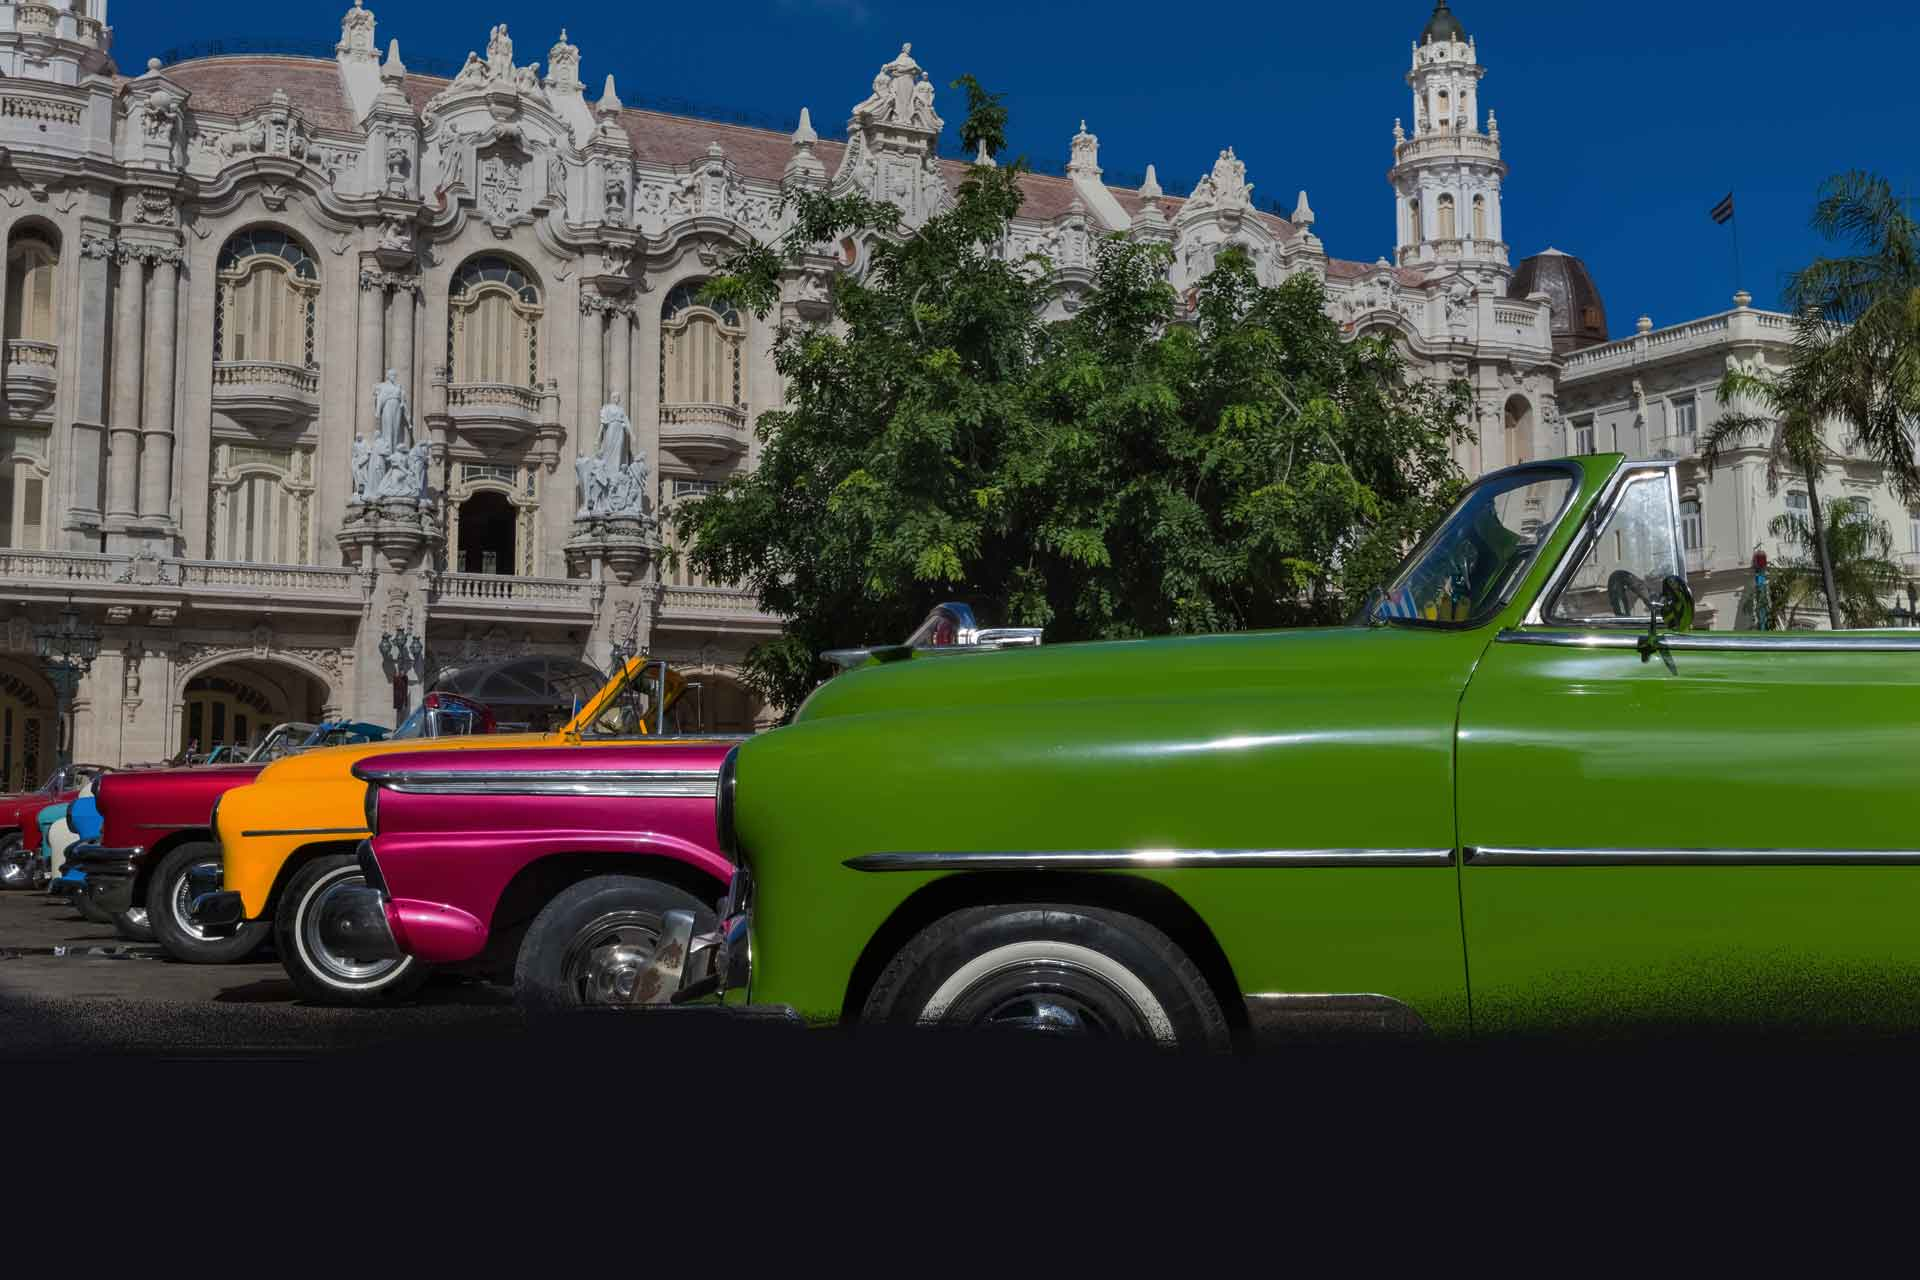 Bespoke Rallies - Cuba Classic Rally 2021, Worldwide Classic Car Rally & Touring Events